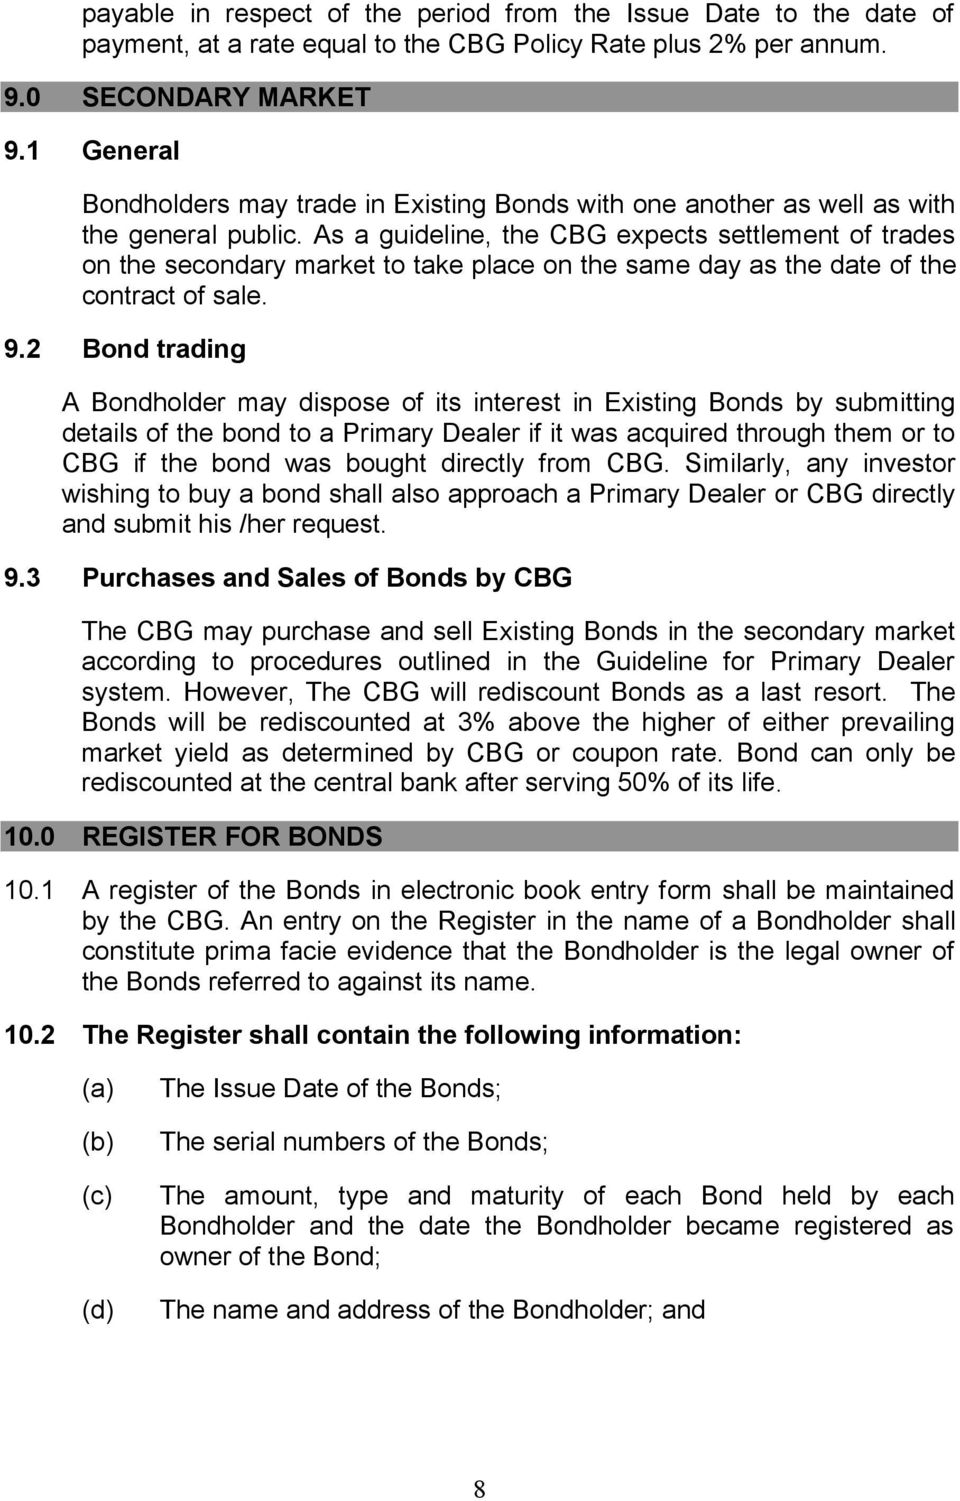 As a guideline, the CBG expects settlement of trades on the secondary market to take place on the same day as the date of the contract of sale. 9.